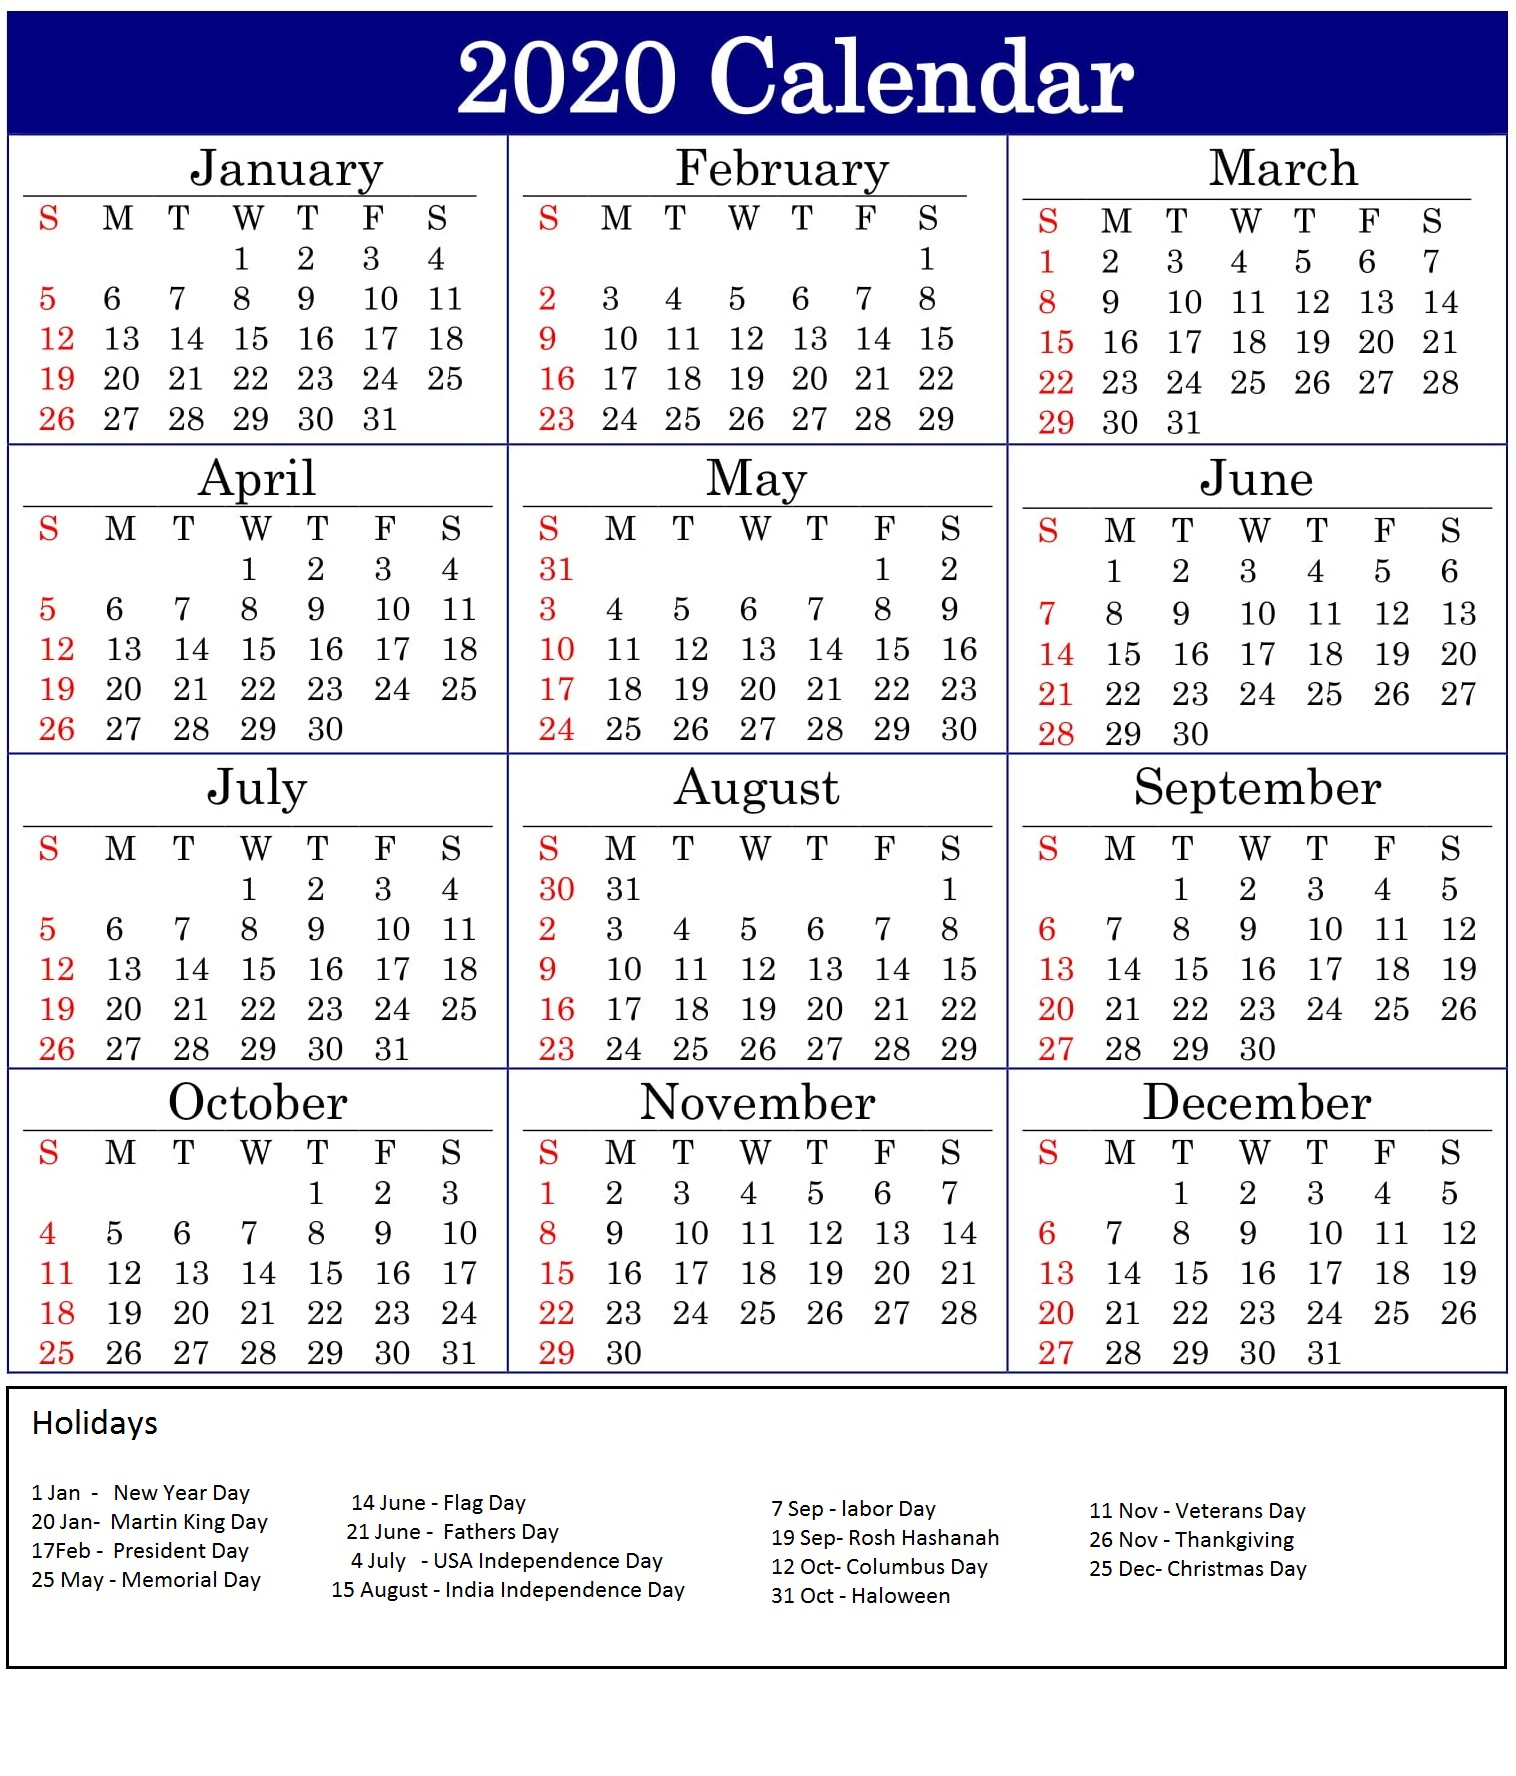 calendar of american holidays 2020